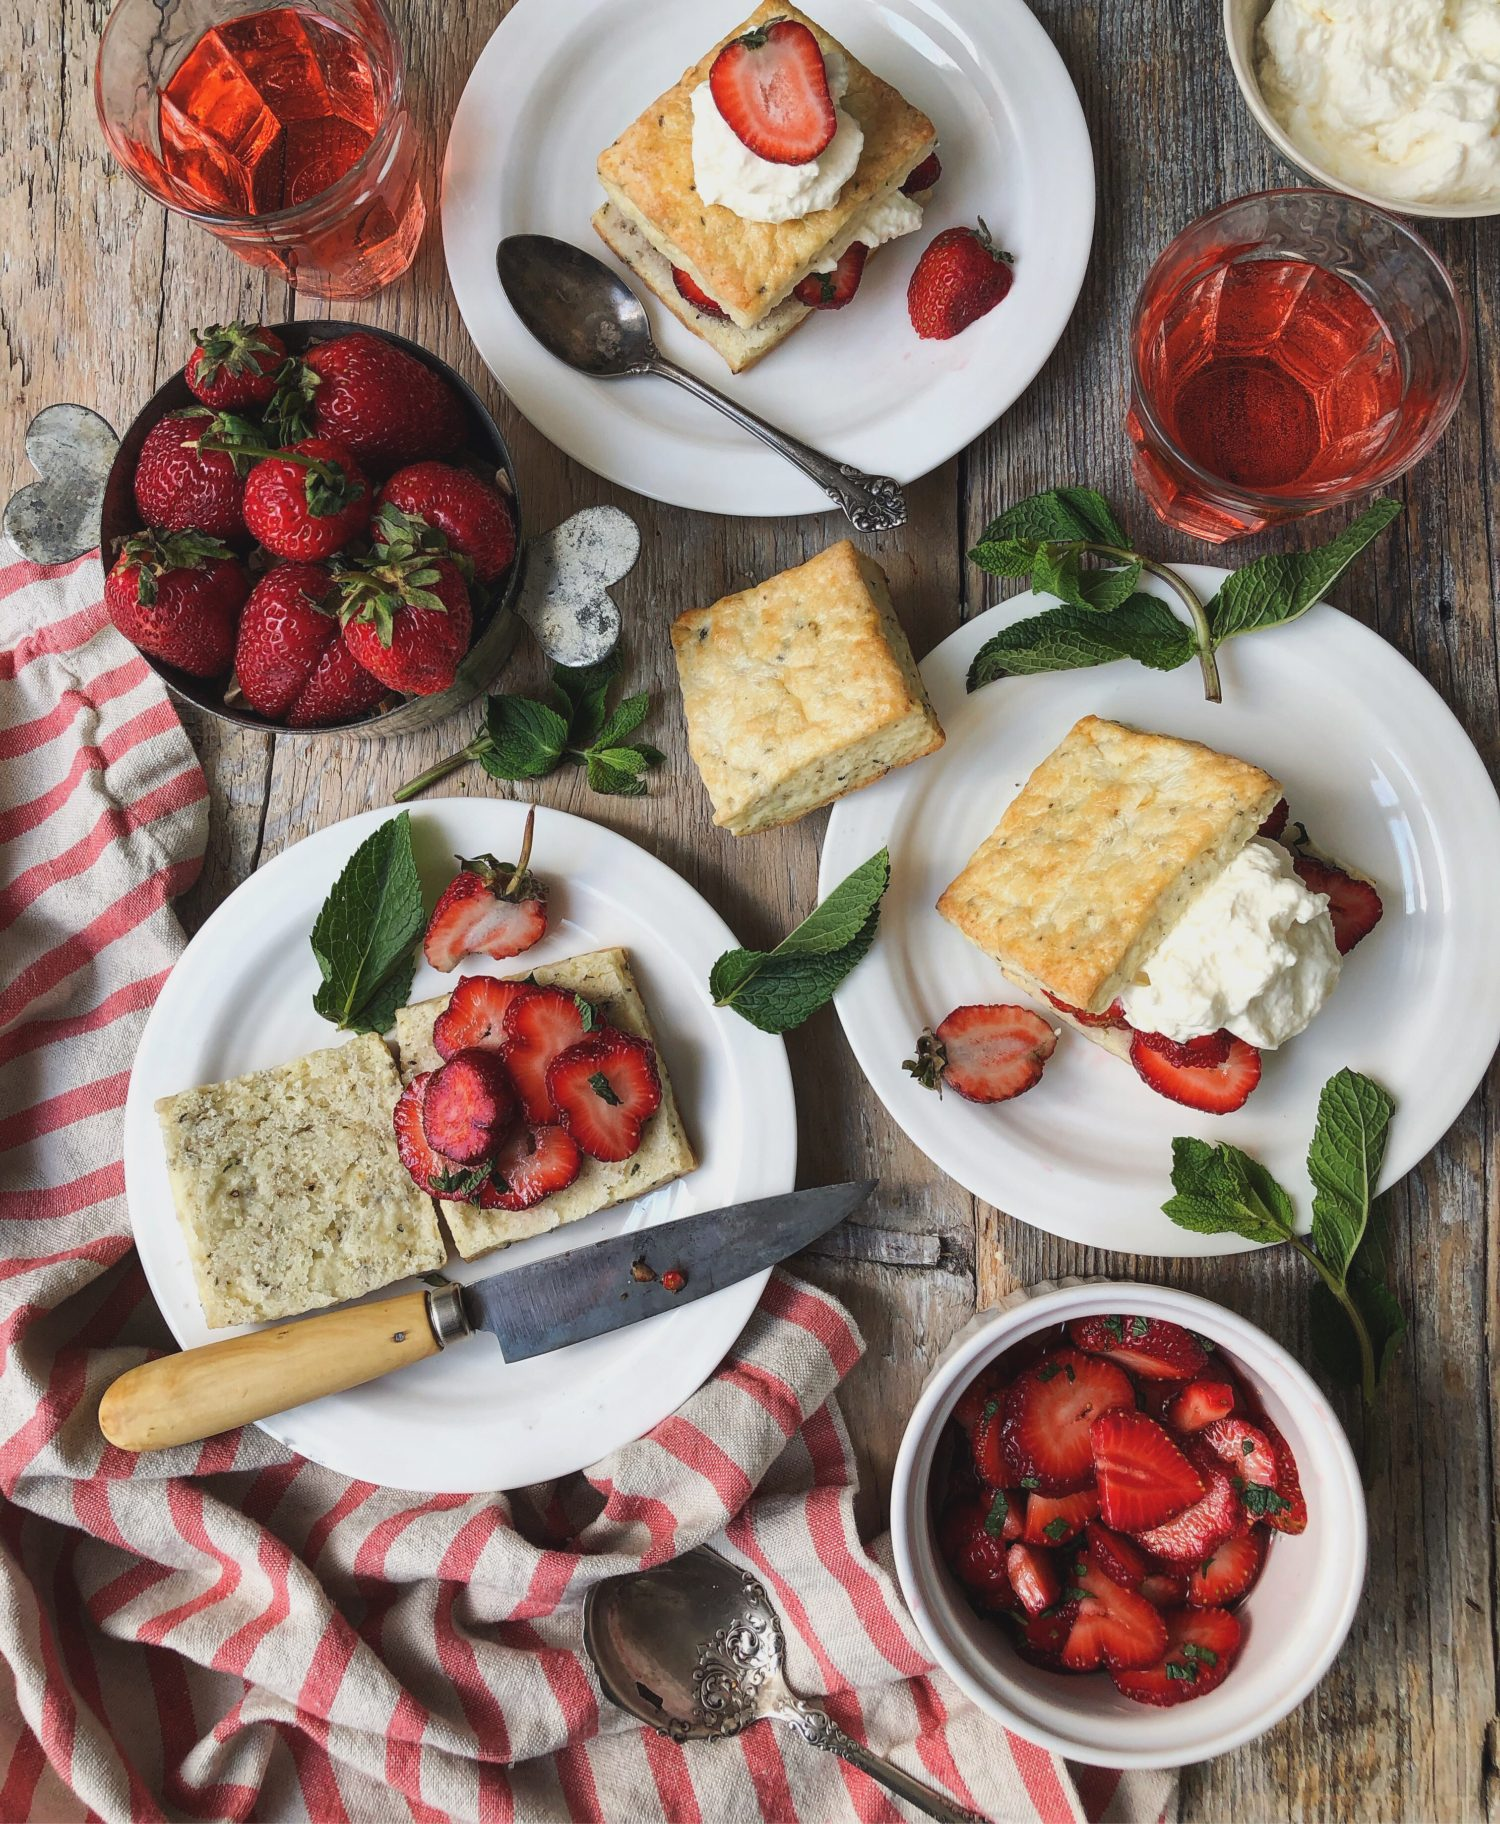 Strawberry Shortcake, Thyme and Pepper Ricotta Biscuits